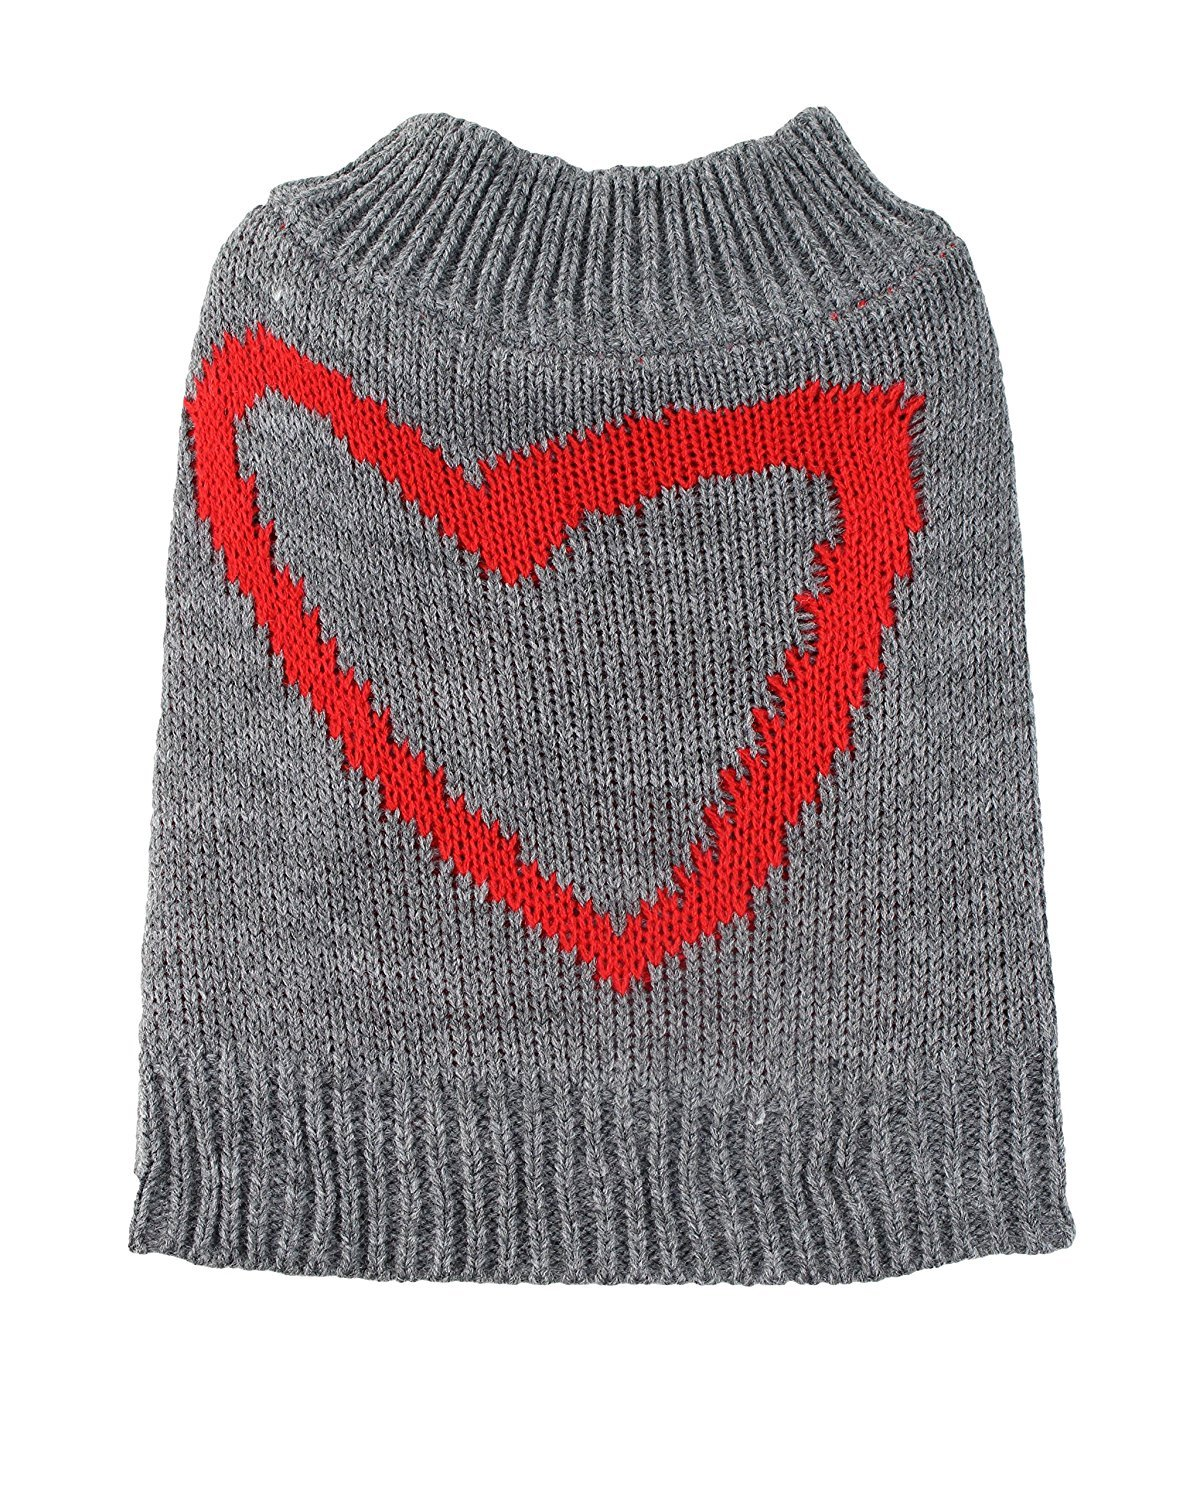 (X-Large) Red Heart Dog Sweater by Midlee